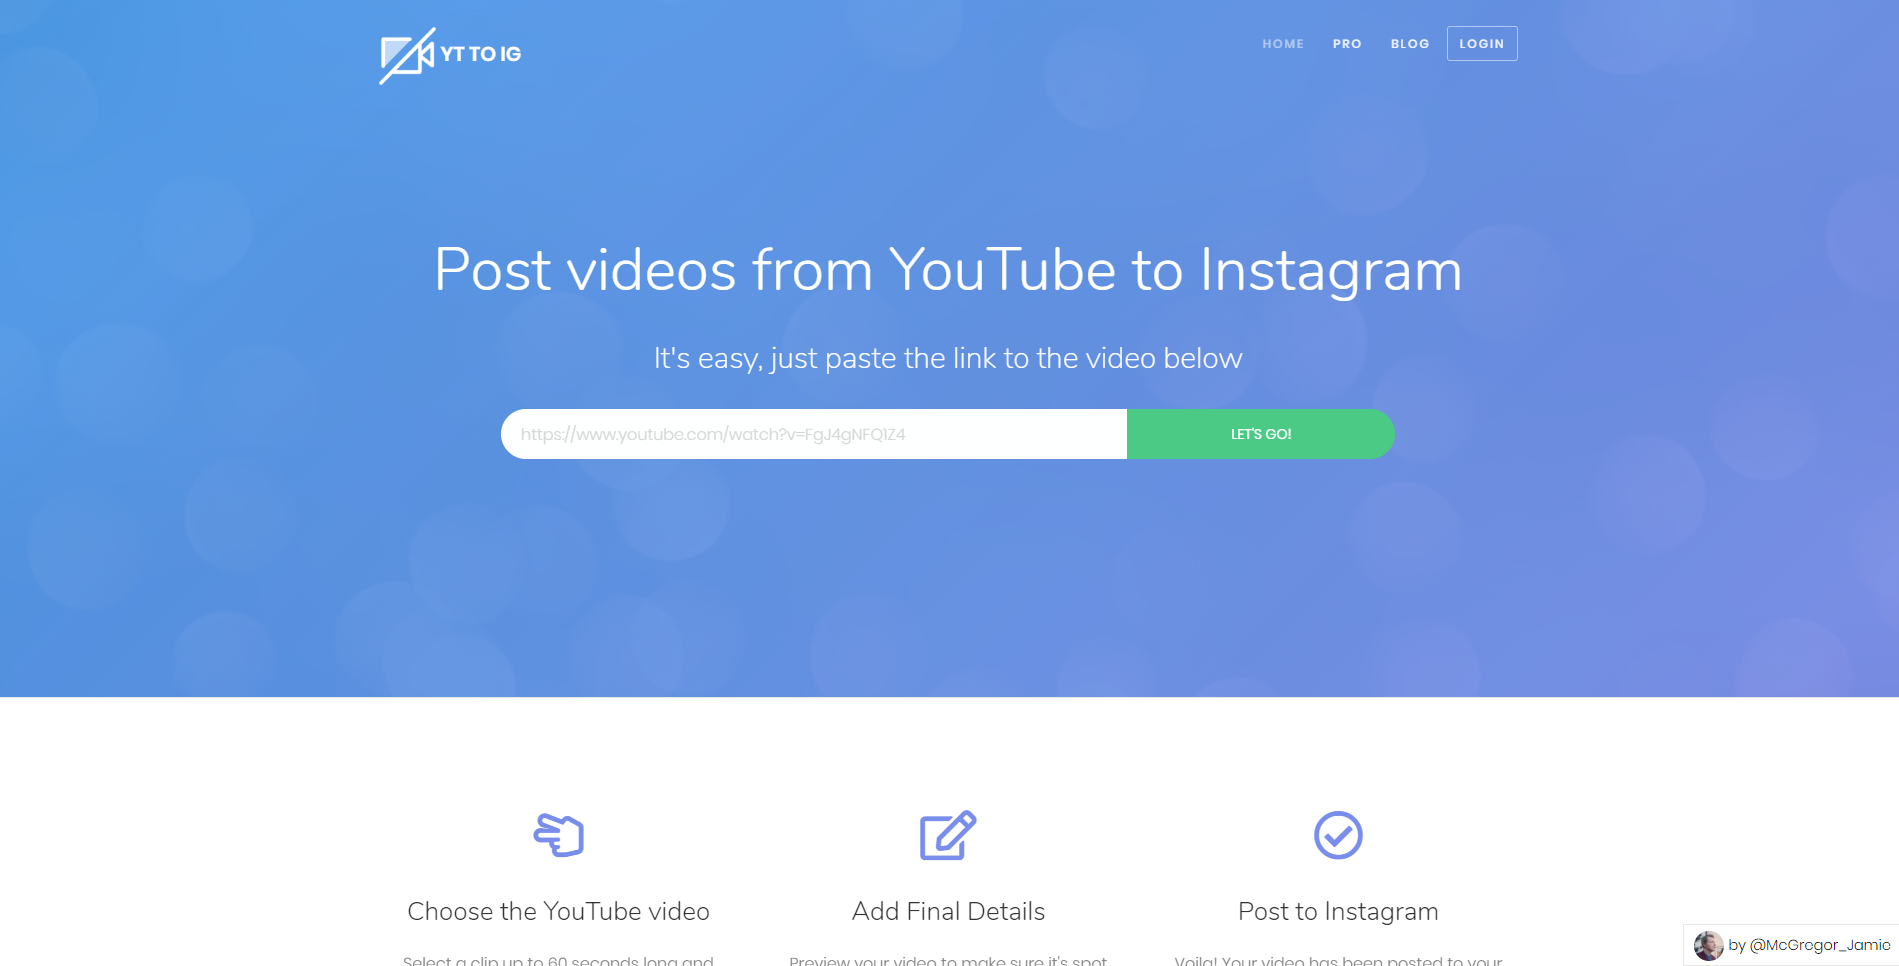 YouTube to Instagram - Post videos from YouTube to Instagram